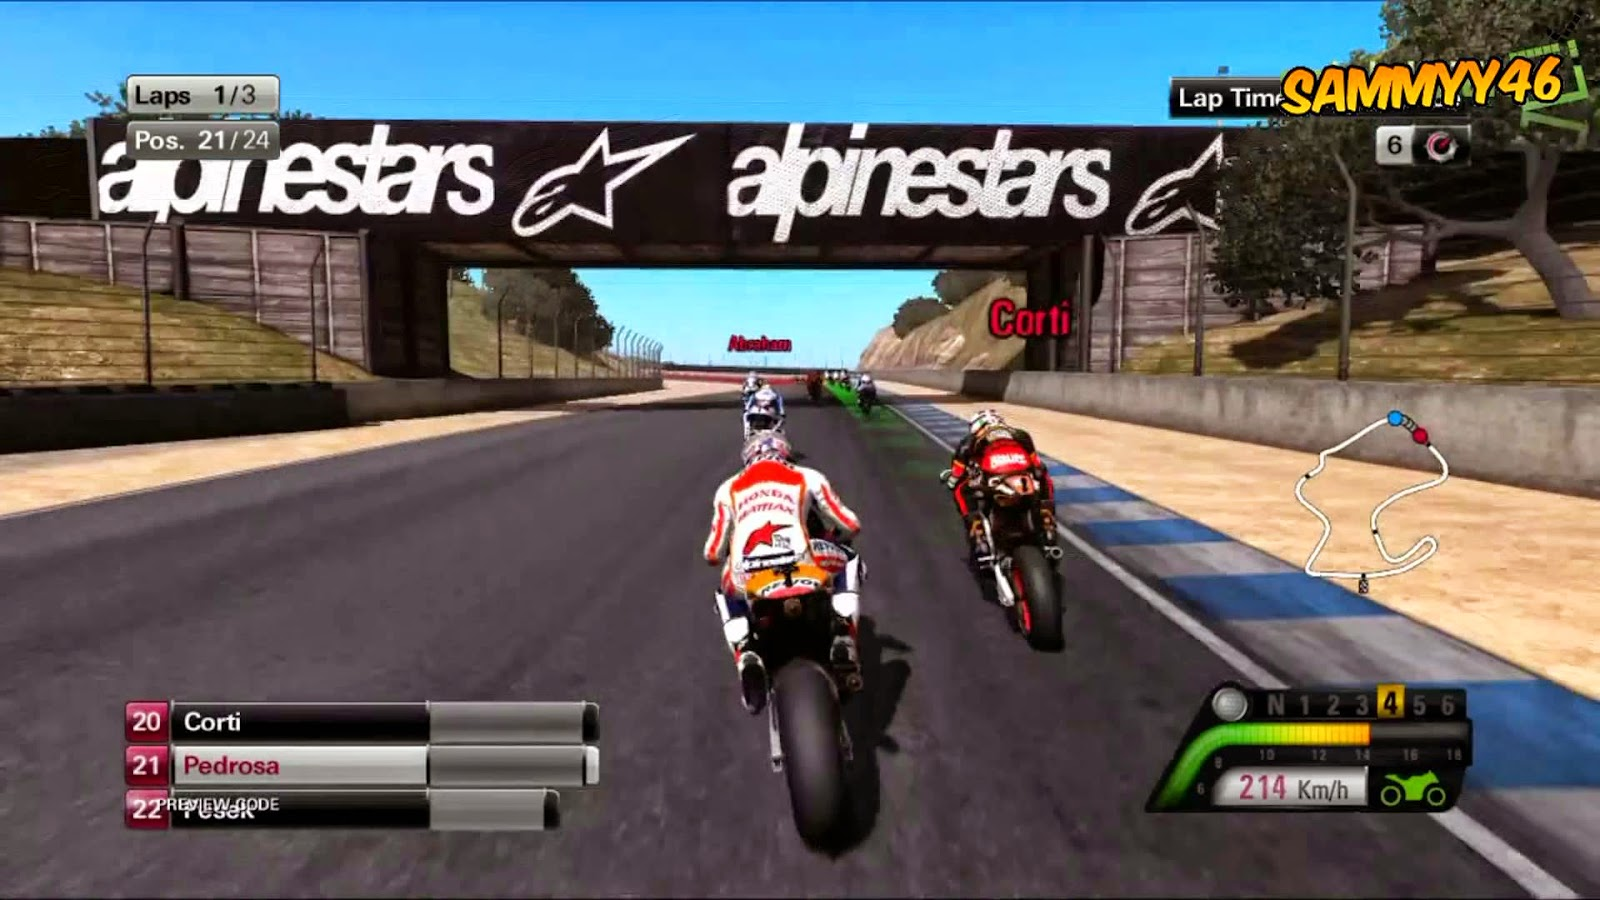 Motogp Race Game Download | MotoGP 2017 Info, Video, Points Table